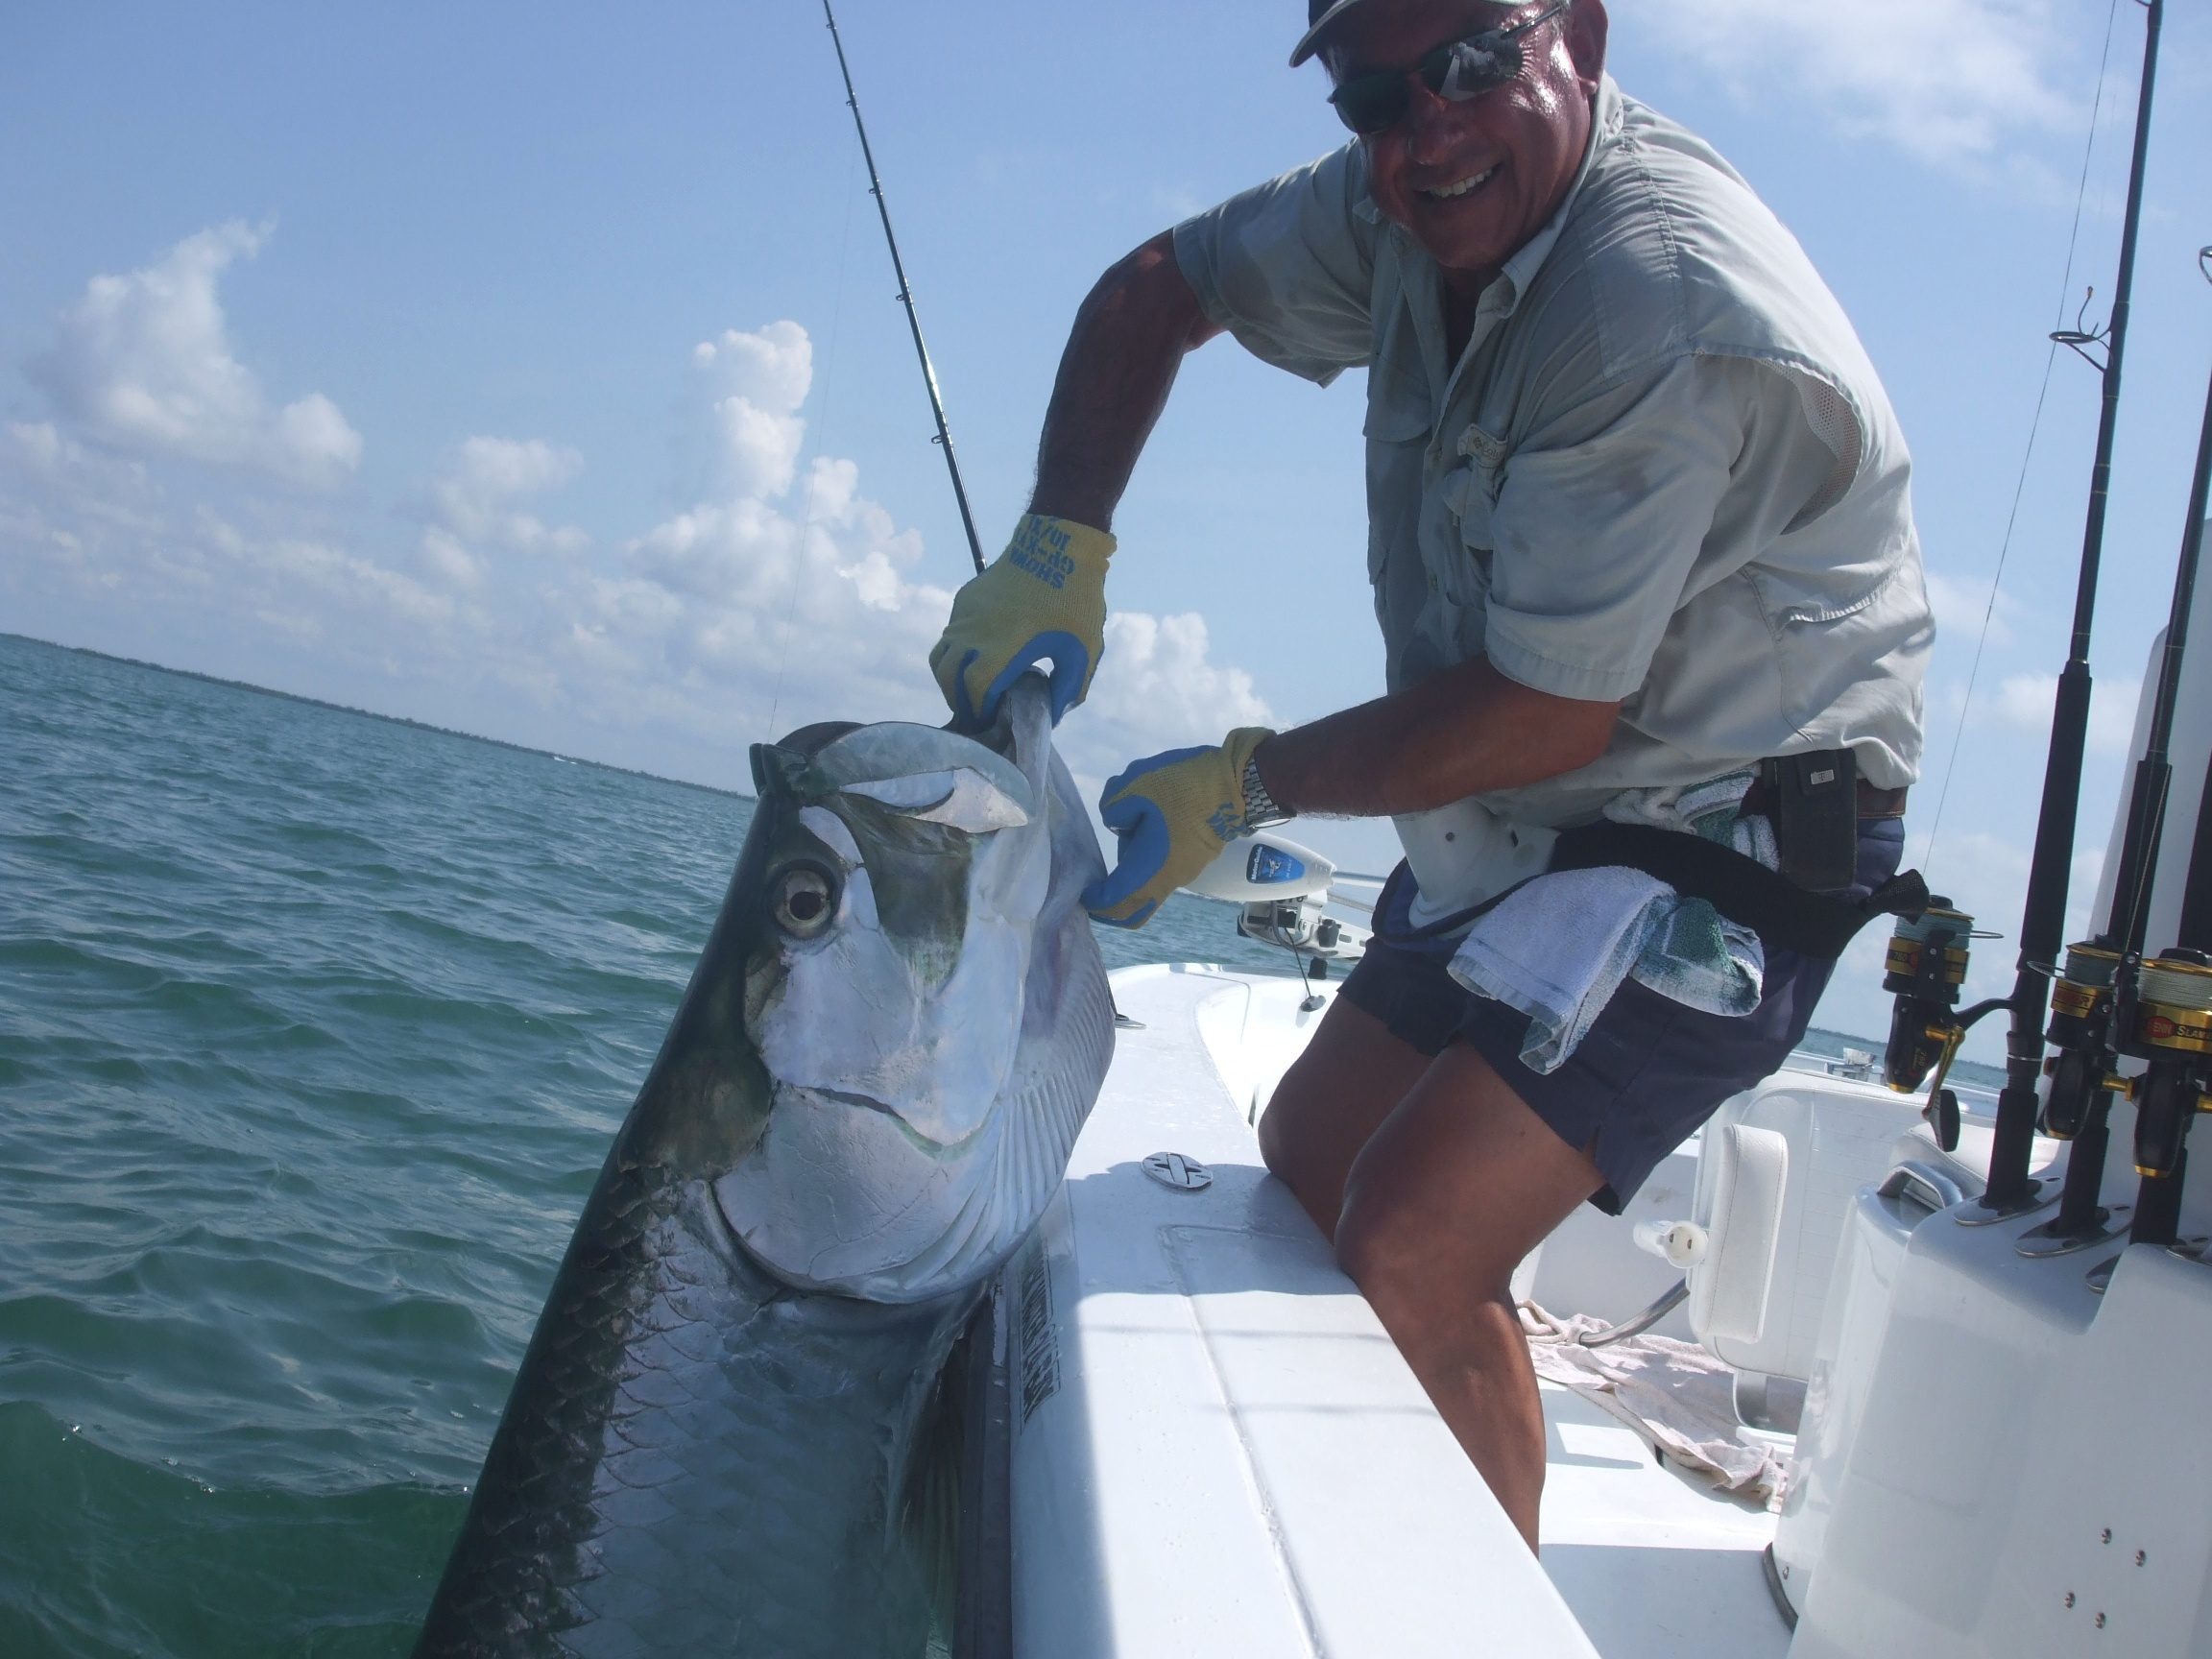 Giant tarpon caught while fishing in Charlotte Harbor near Boca Grande Pass